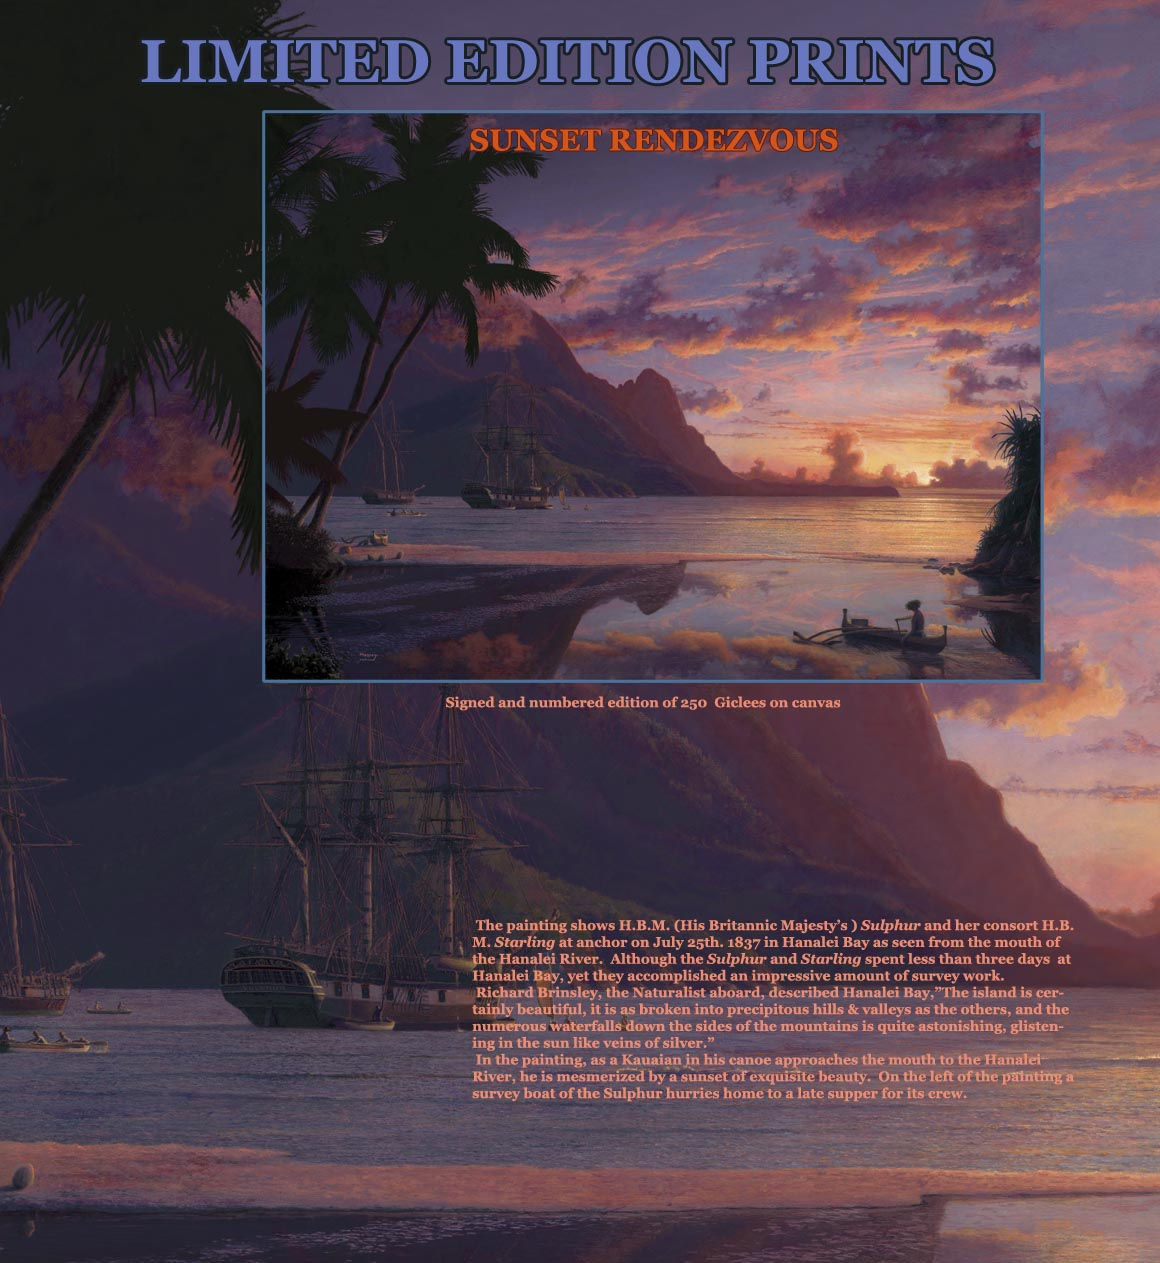 Sunset Hanalei Bay and ships 1837